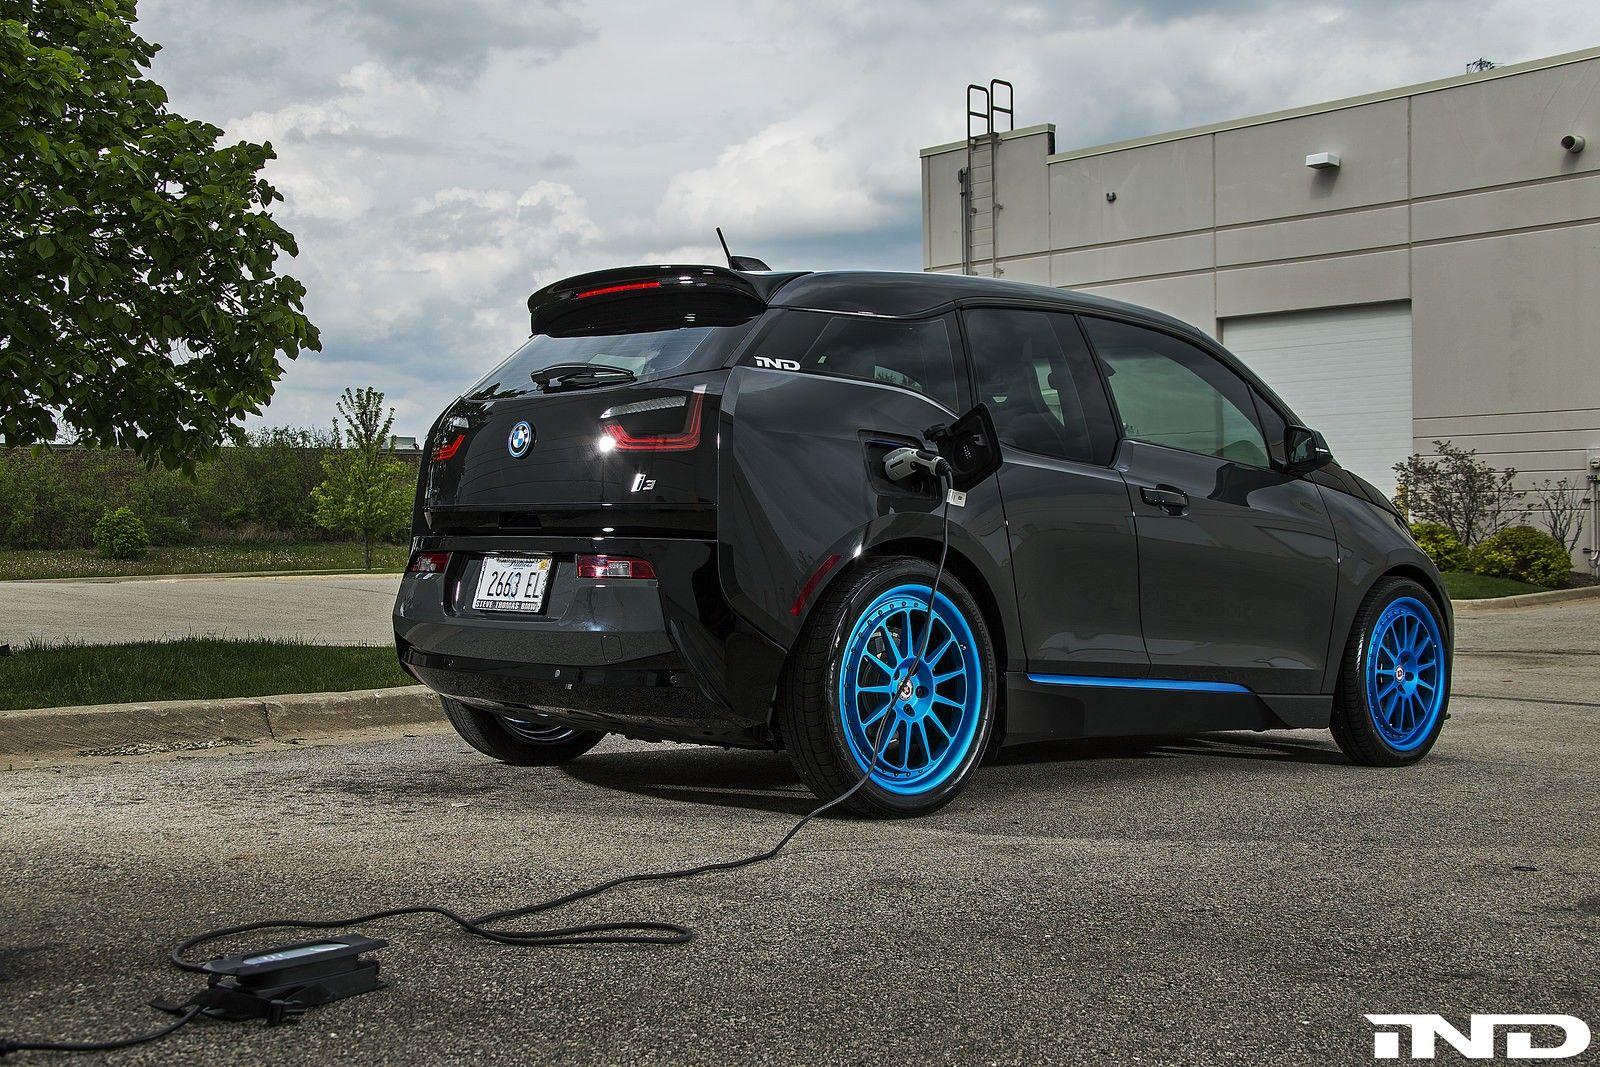 Bmw I3 Tuned By Ind Distribution Looks Meaner Than Usual Bmw I3